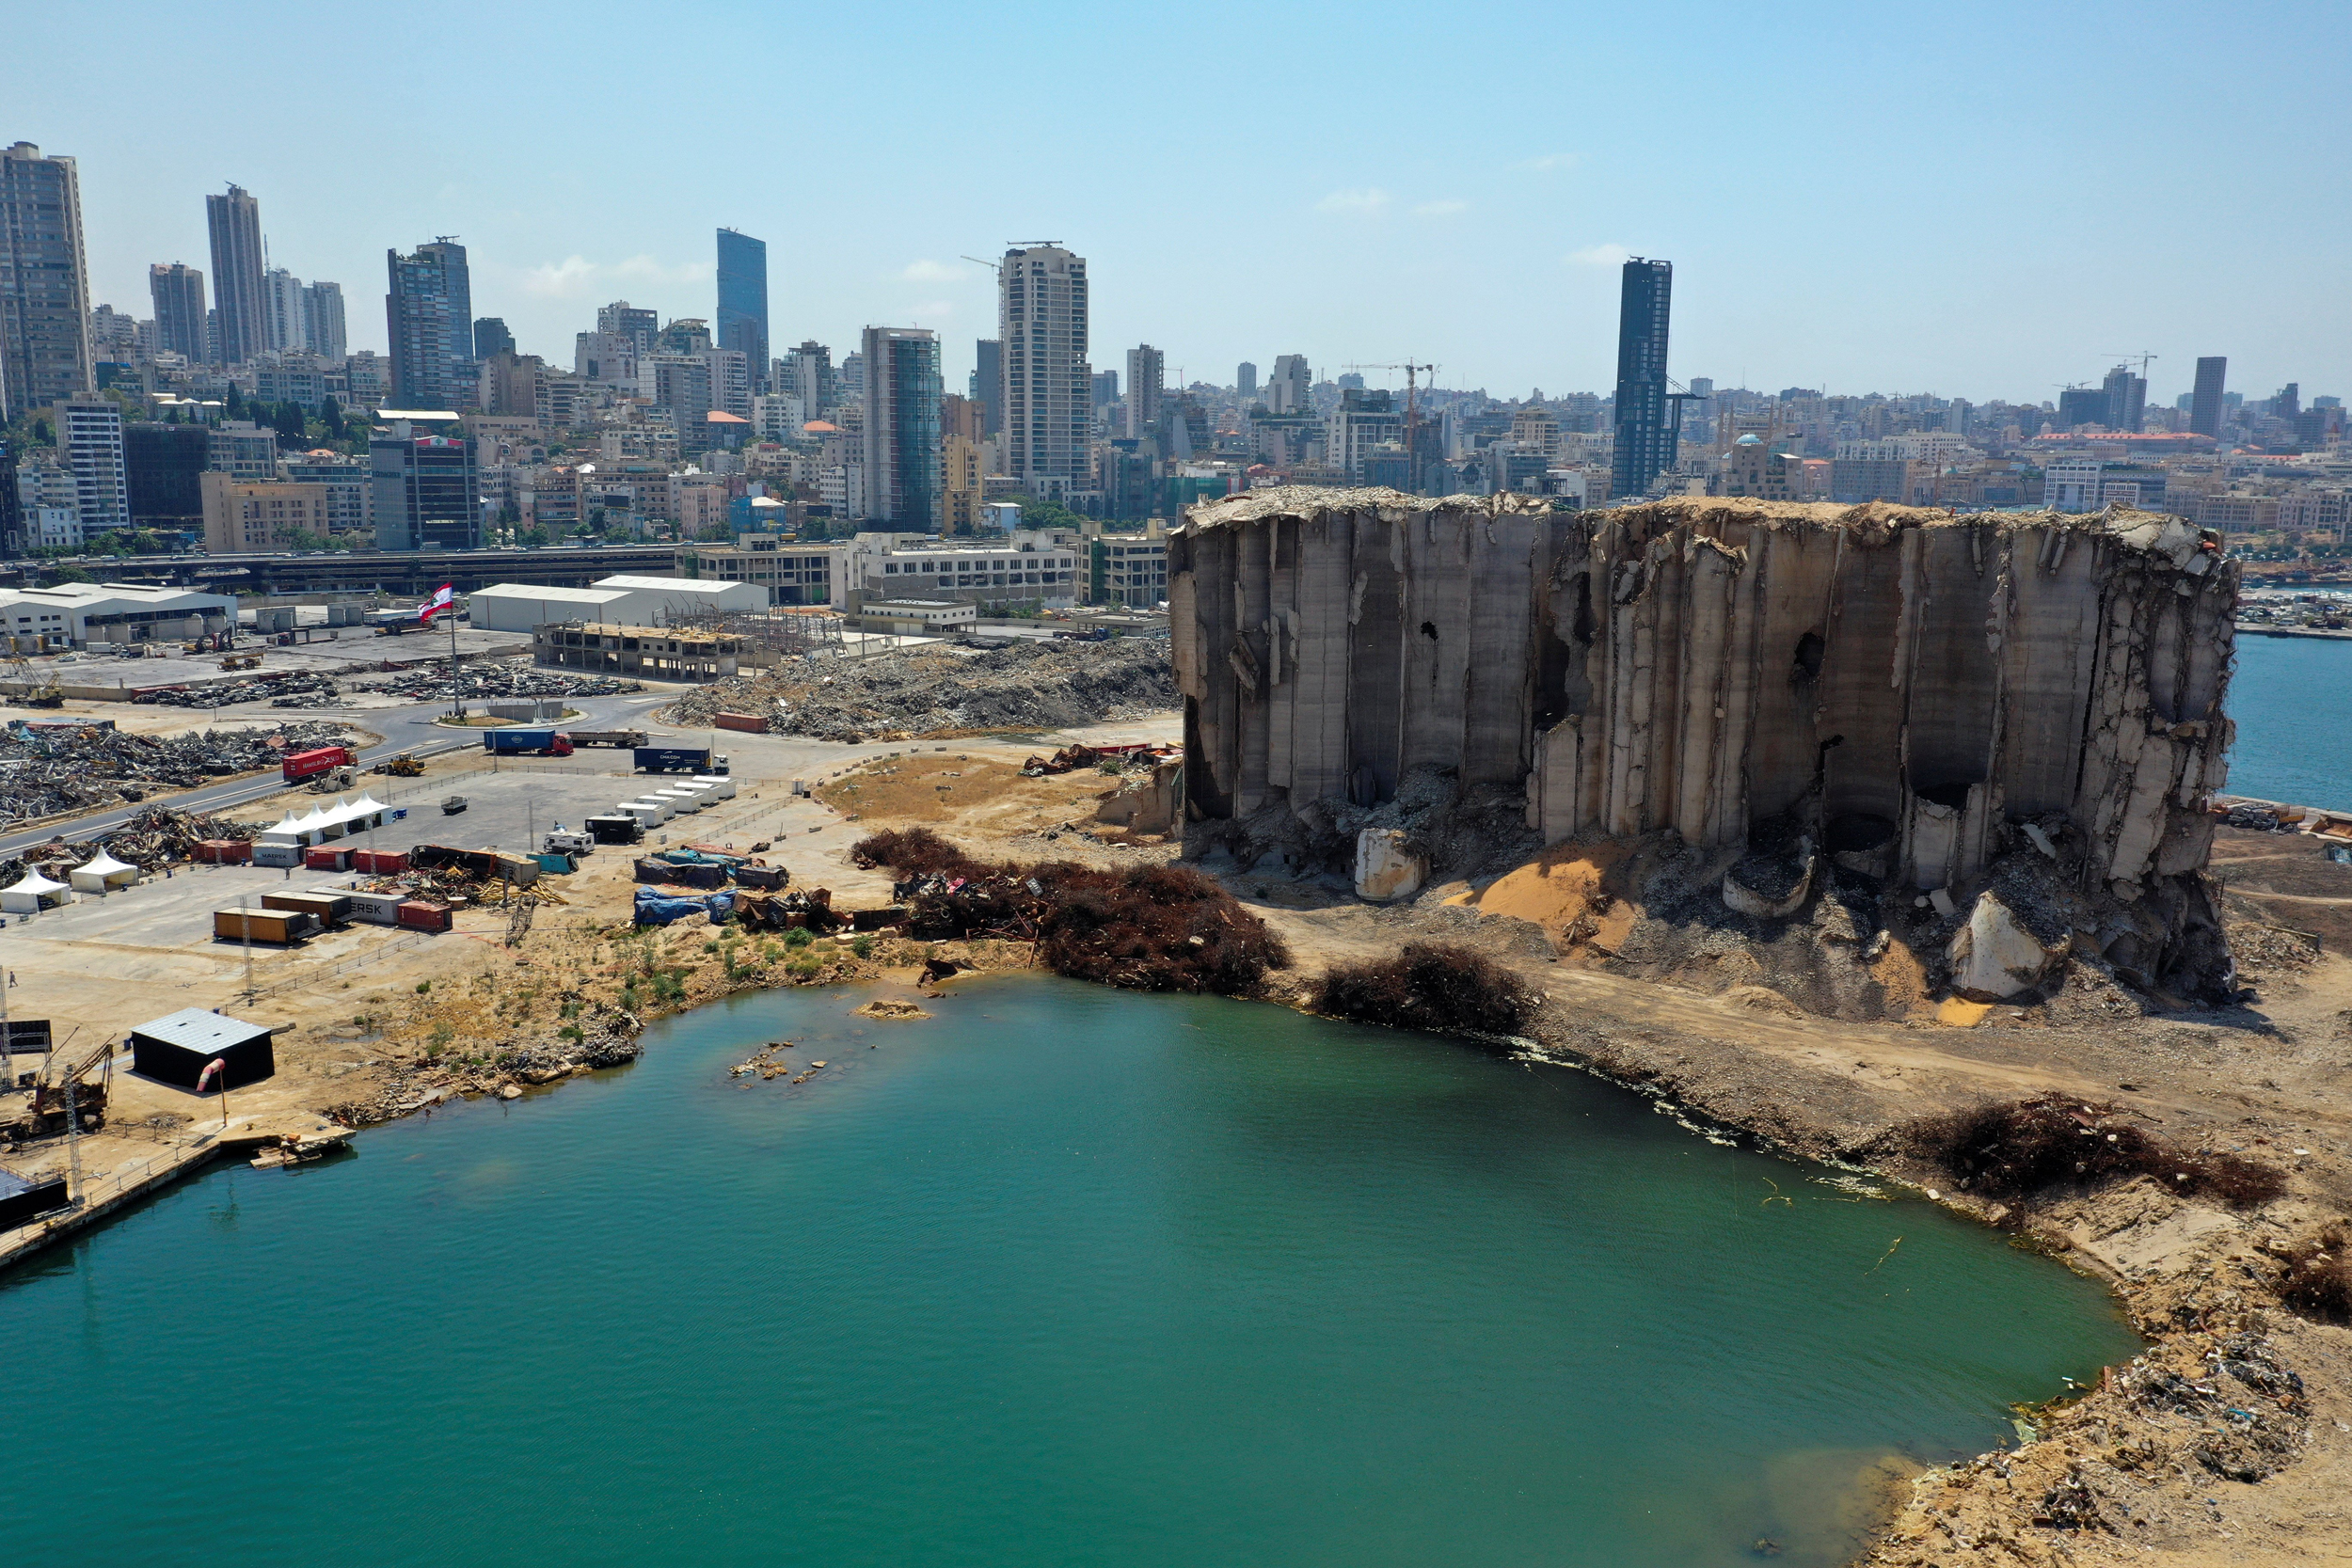 Year after devastating blast pulverized swaths of Beirut, city is still on its knees